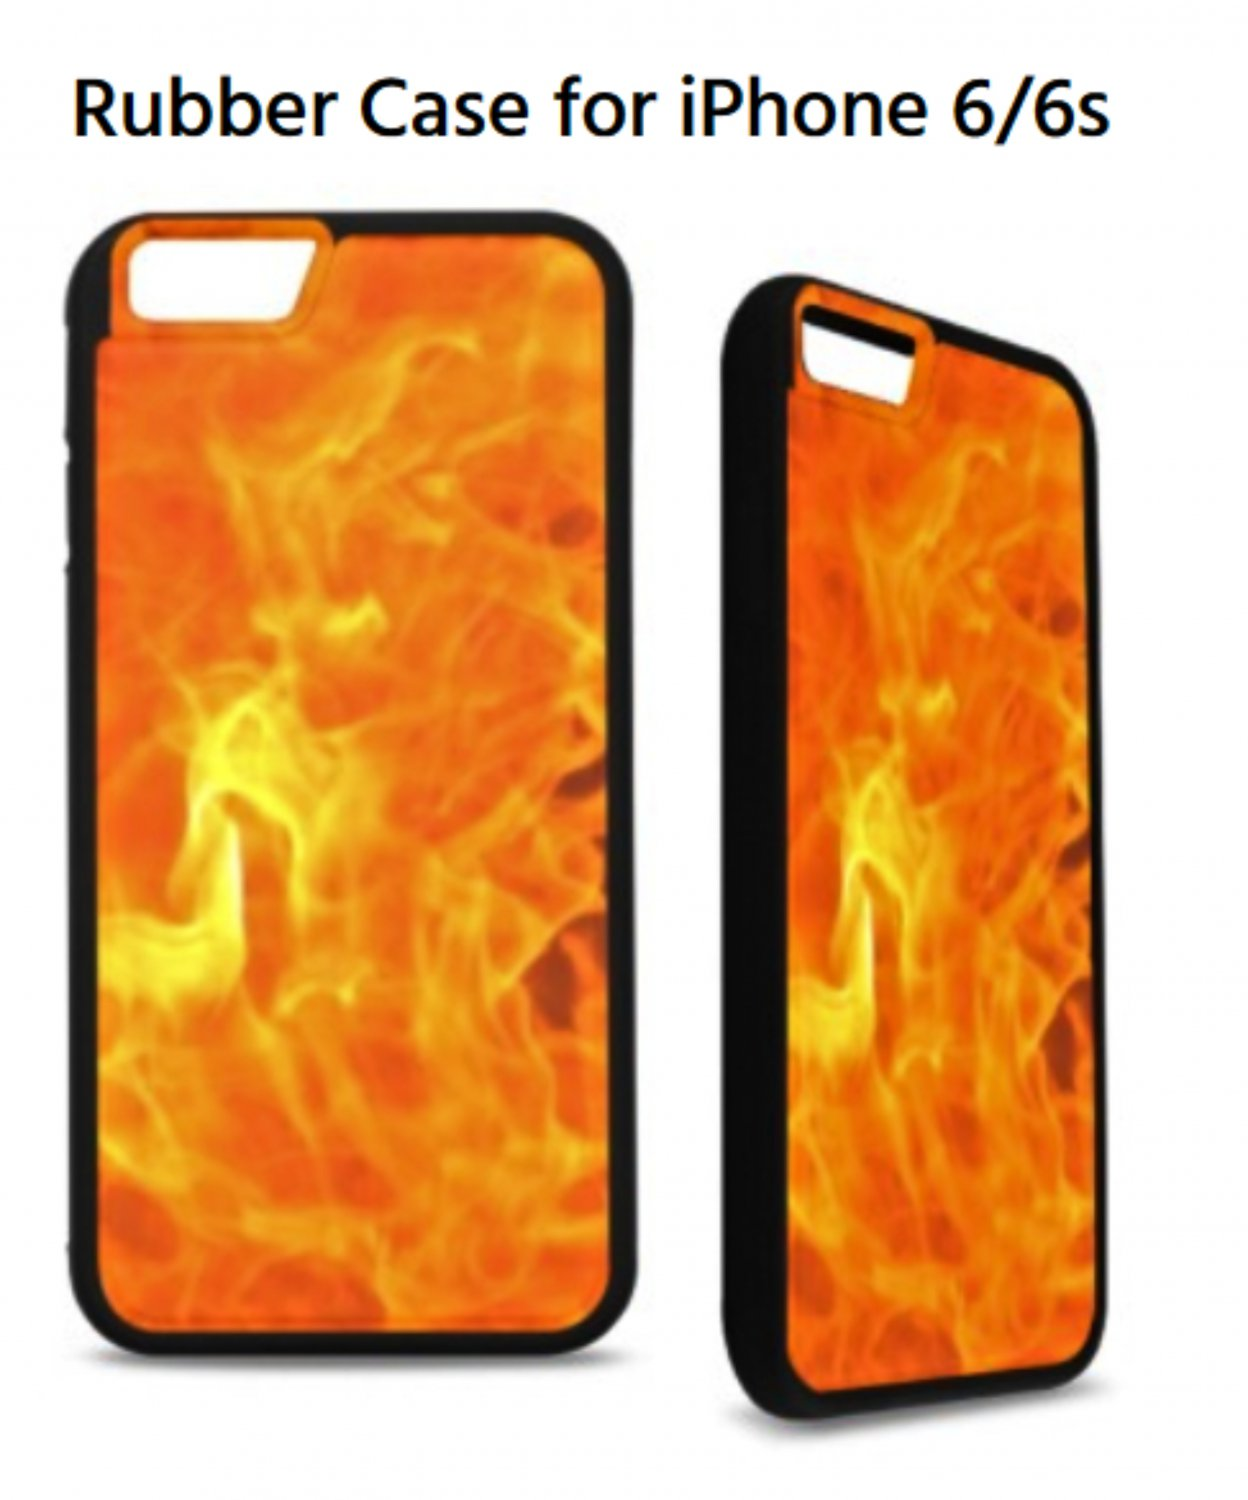 Blazing Fire Rubber Case for iPhone 6/6s